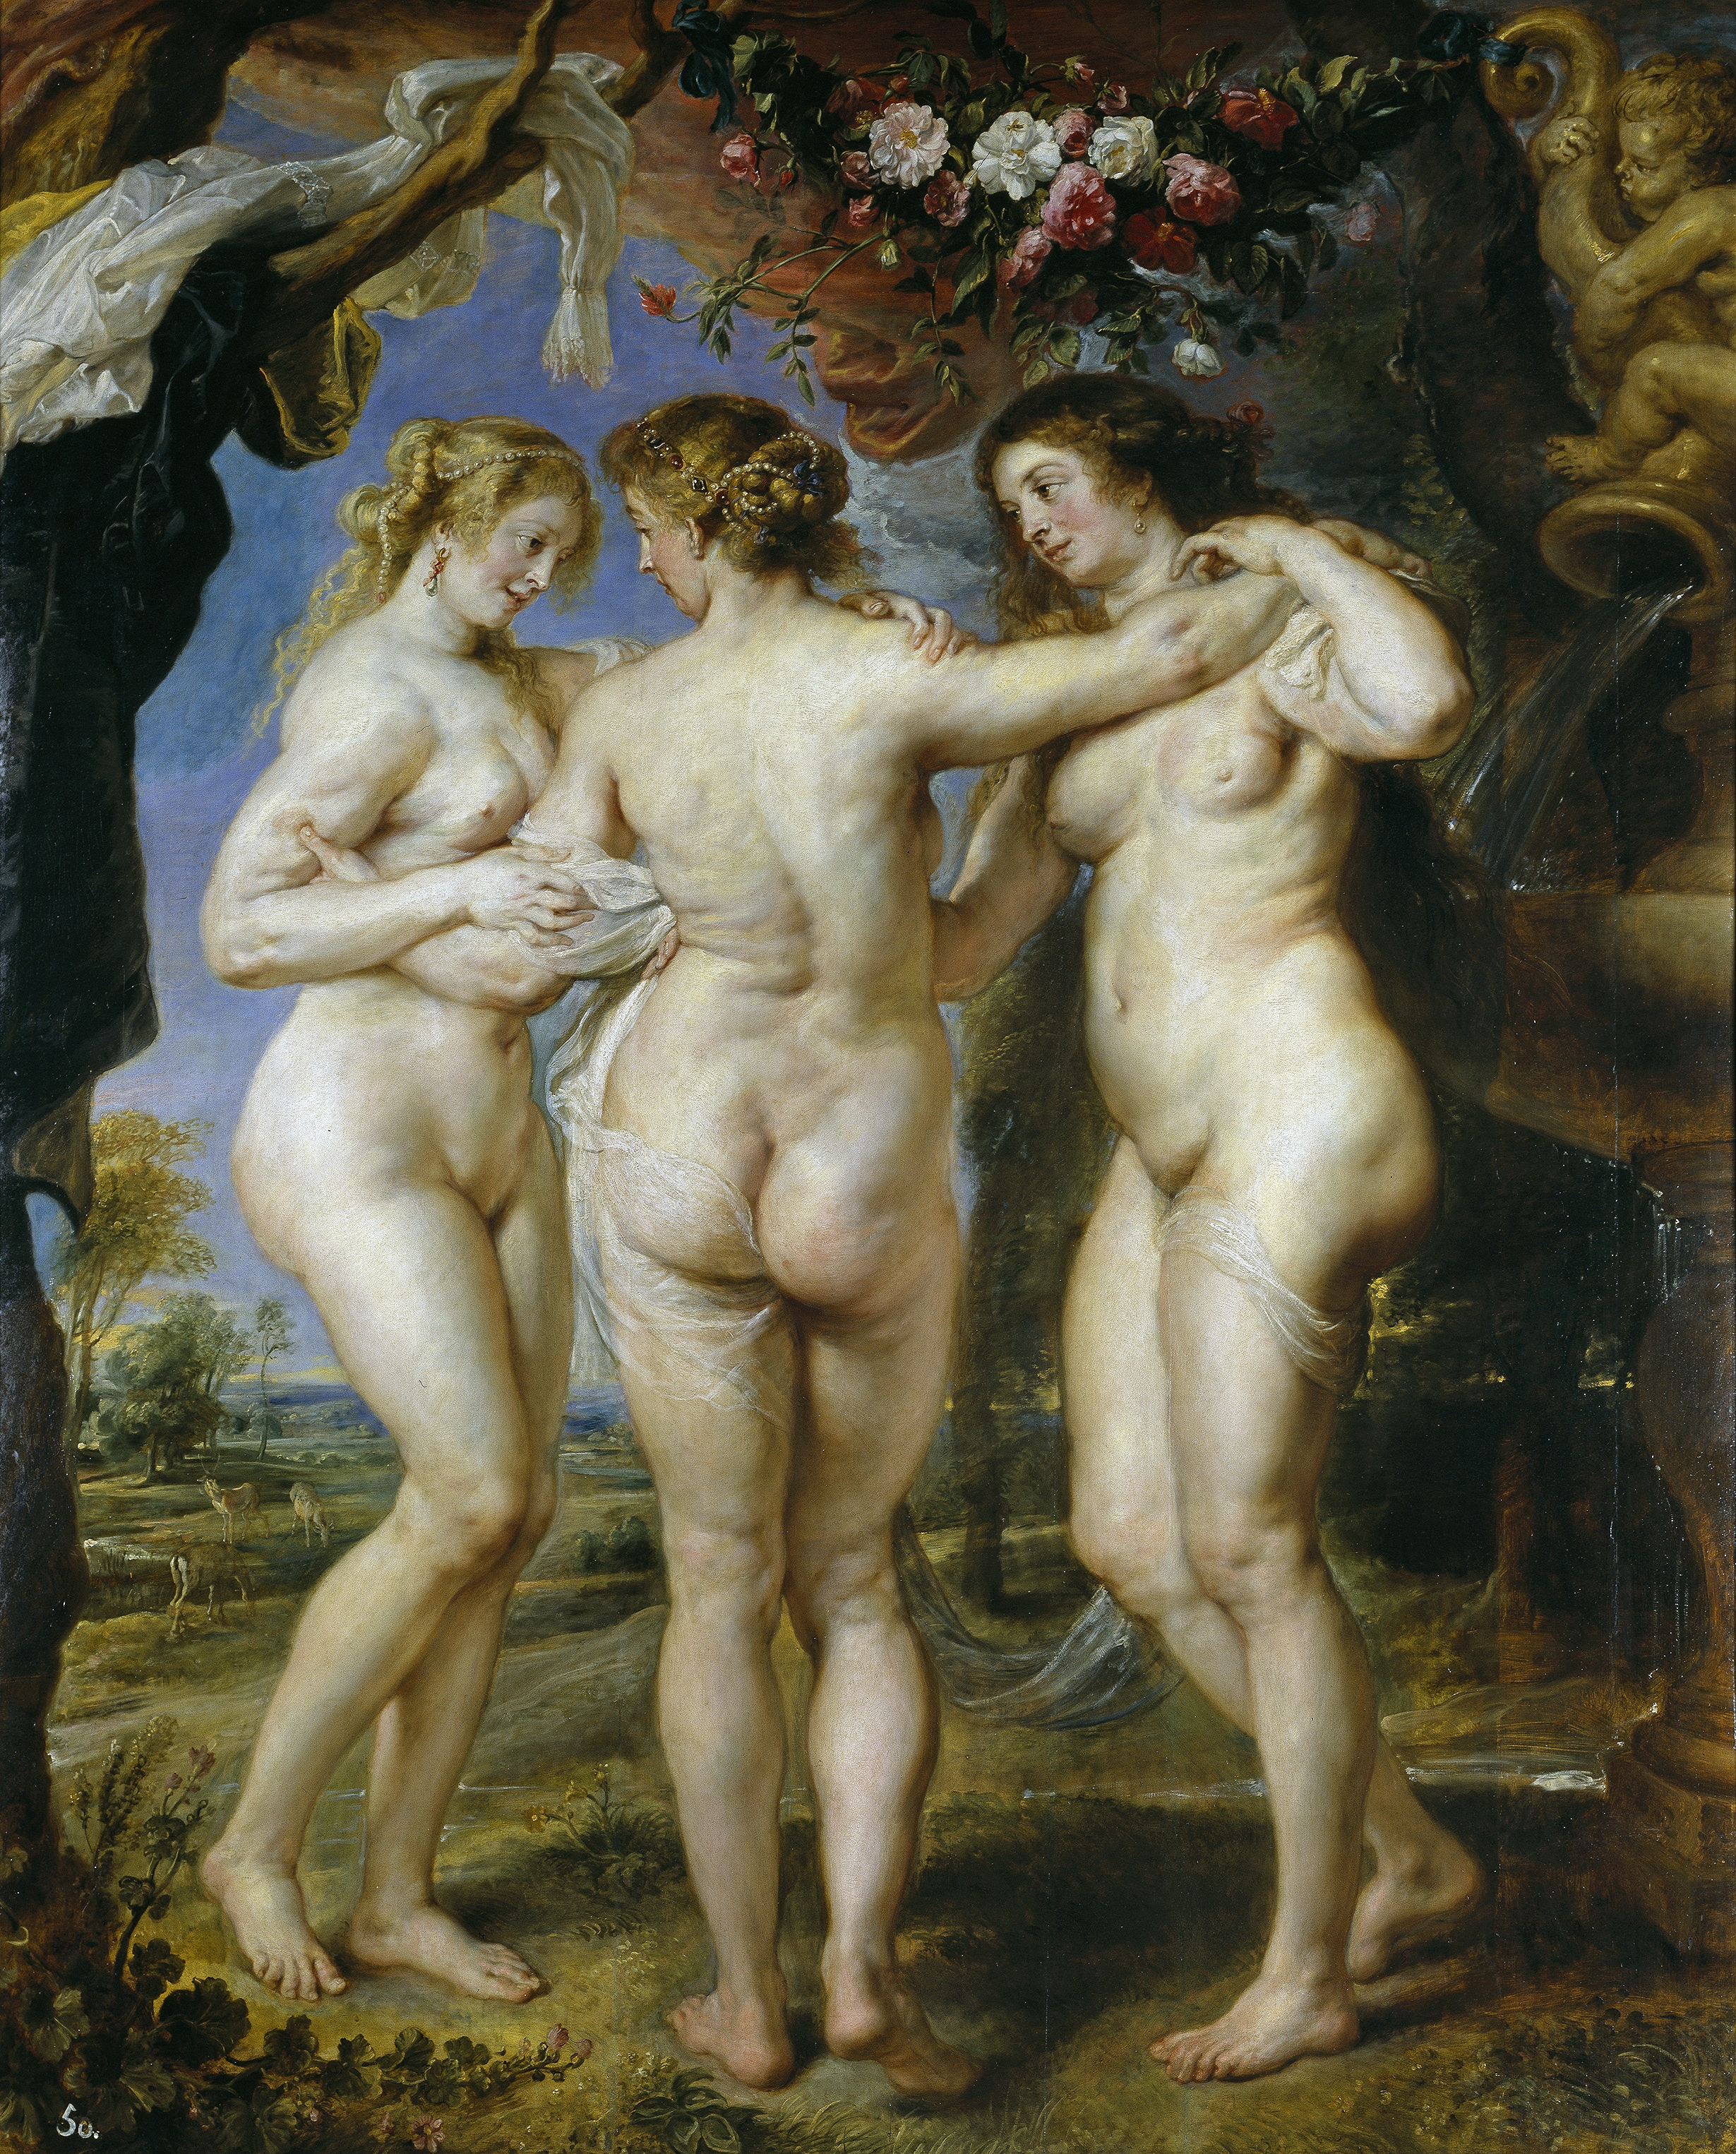 The Three Graces paintings by Rubens